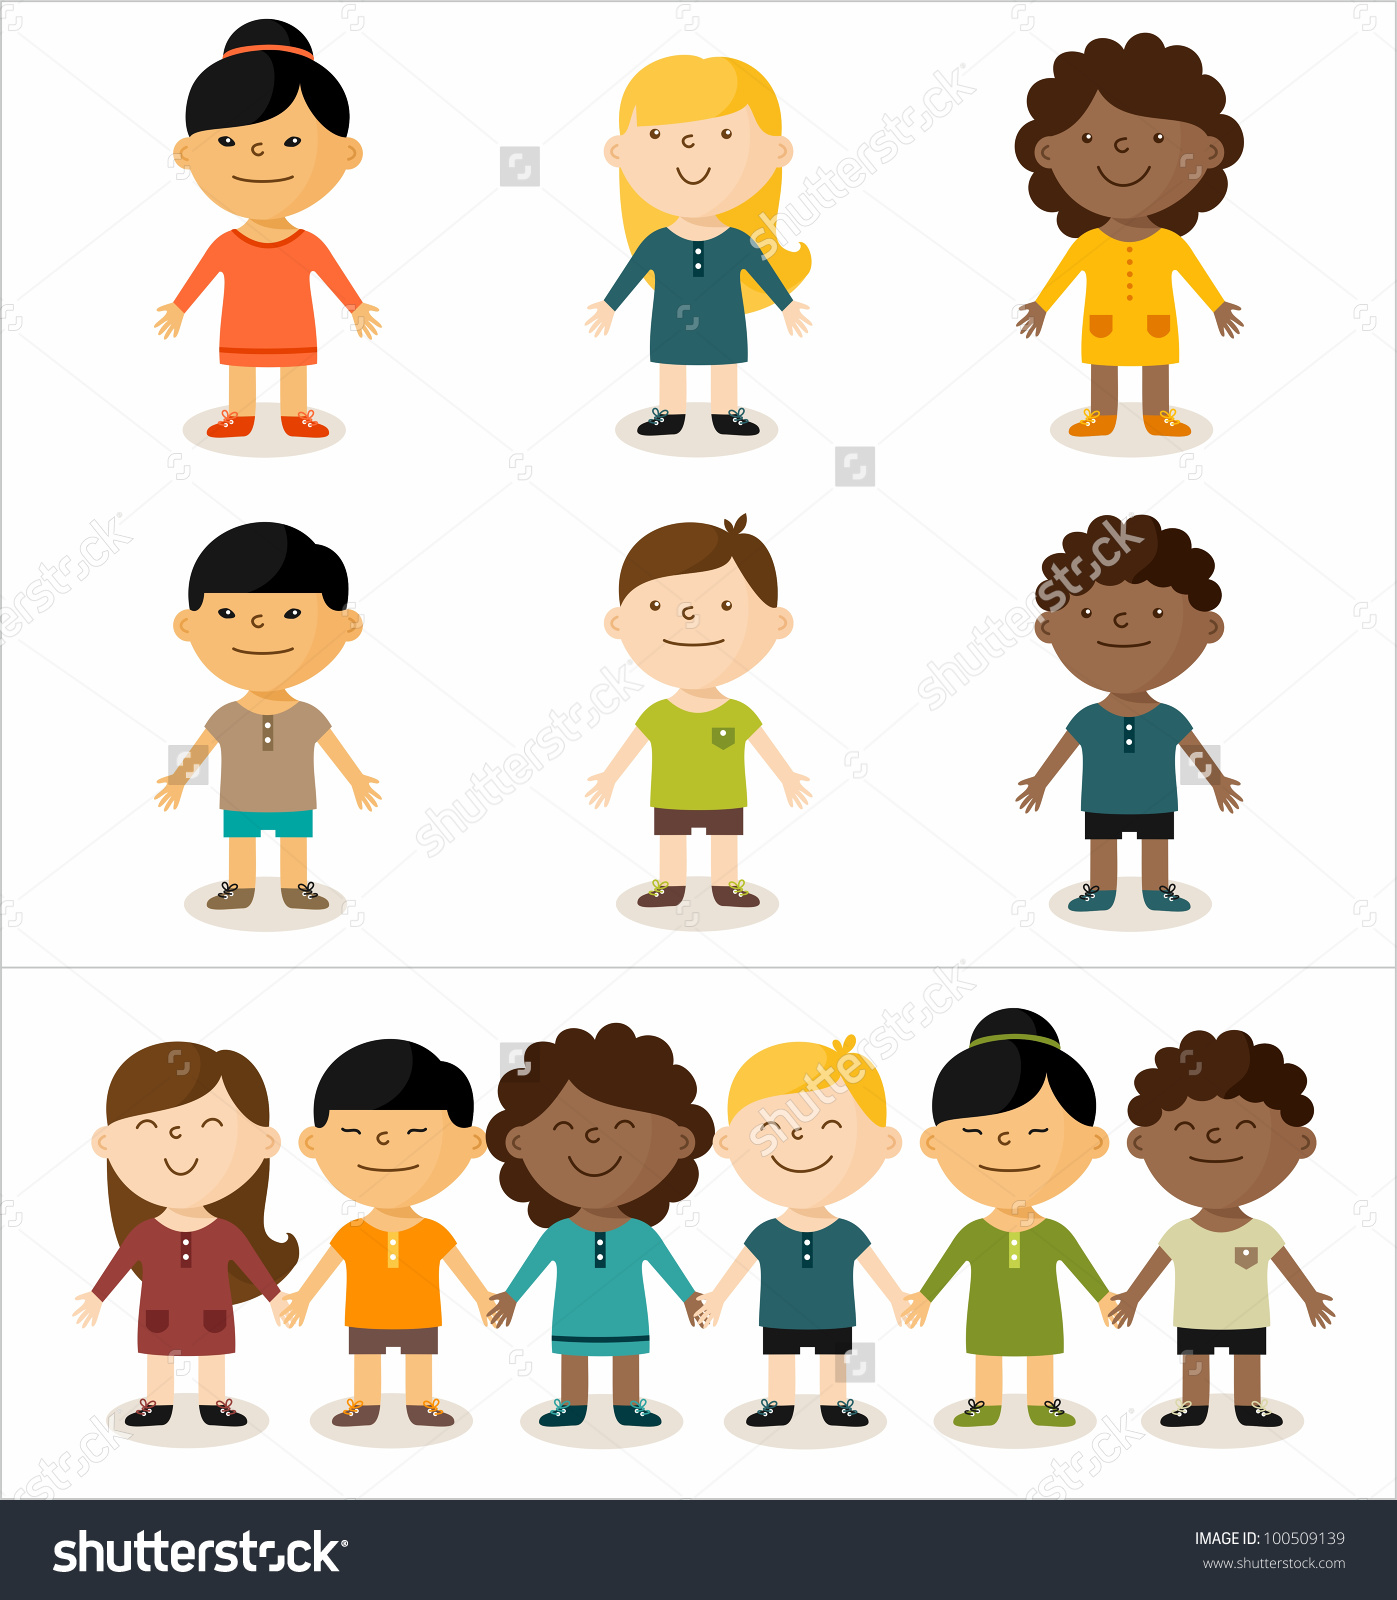 Fit kids clipart vector library stock Vector Illustration Cute Smiling Multicultural Children Stock ... vector library stock